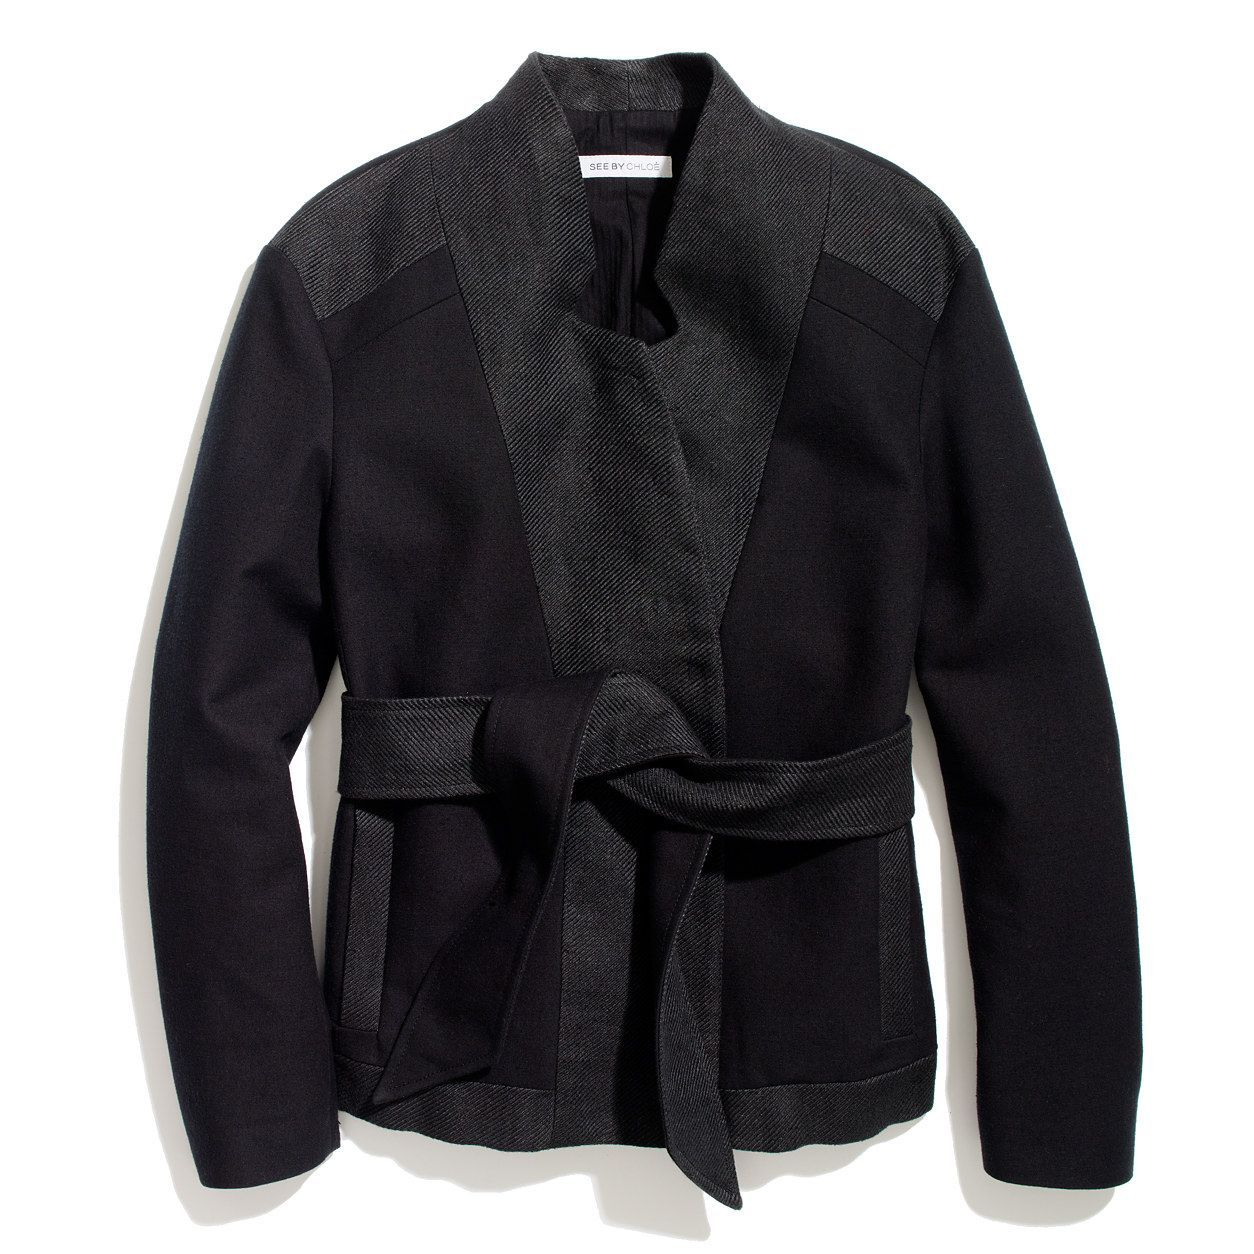 Madewell See By Chloé Jacket Collarless jacket, Jackets